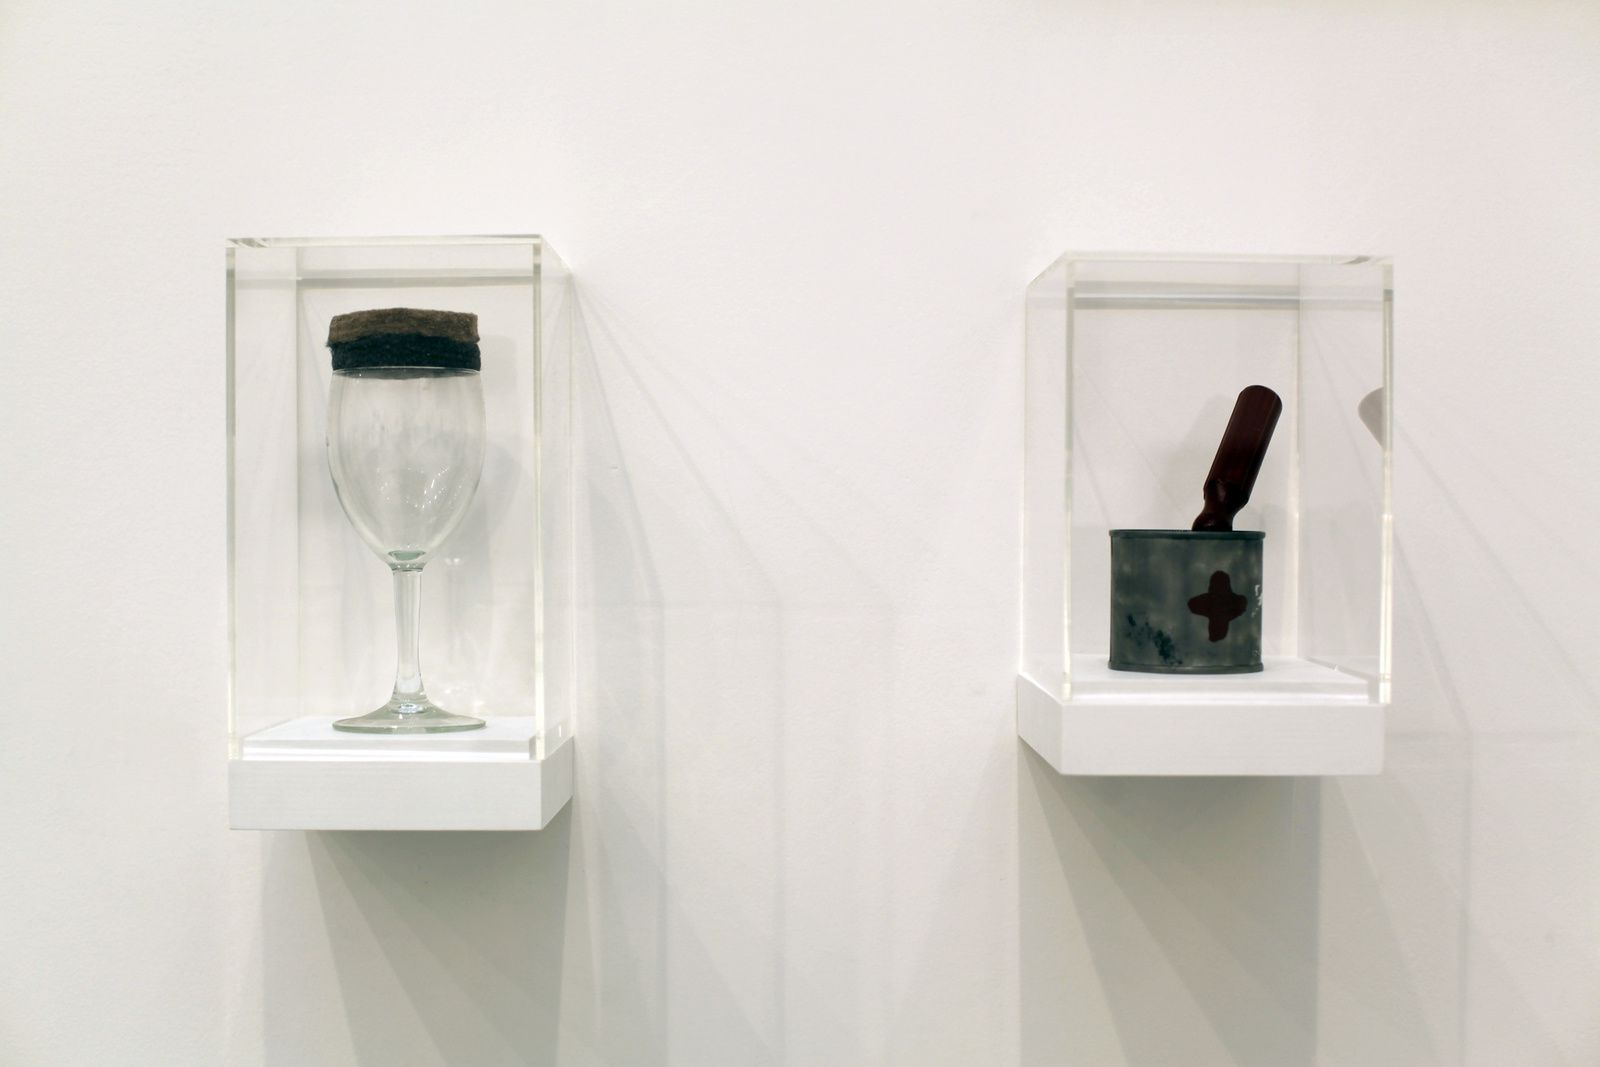 """Beuys Fluxus Drinki"", 1993 de STURTEVANT - Courtesy Galerie Ropac © Photo Éric Simon"